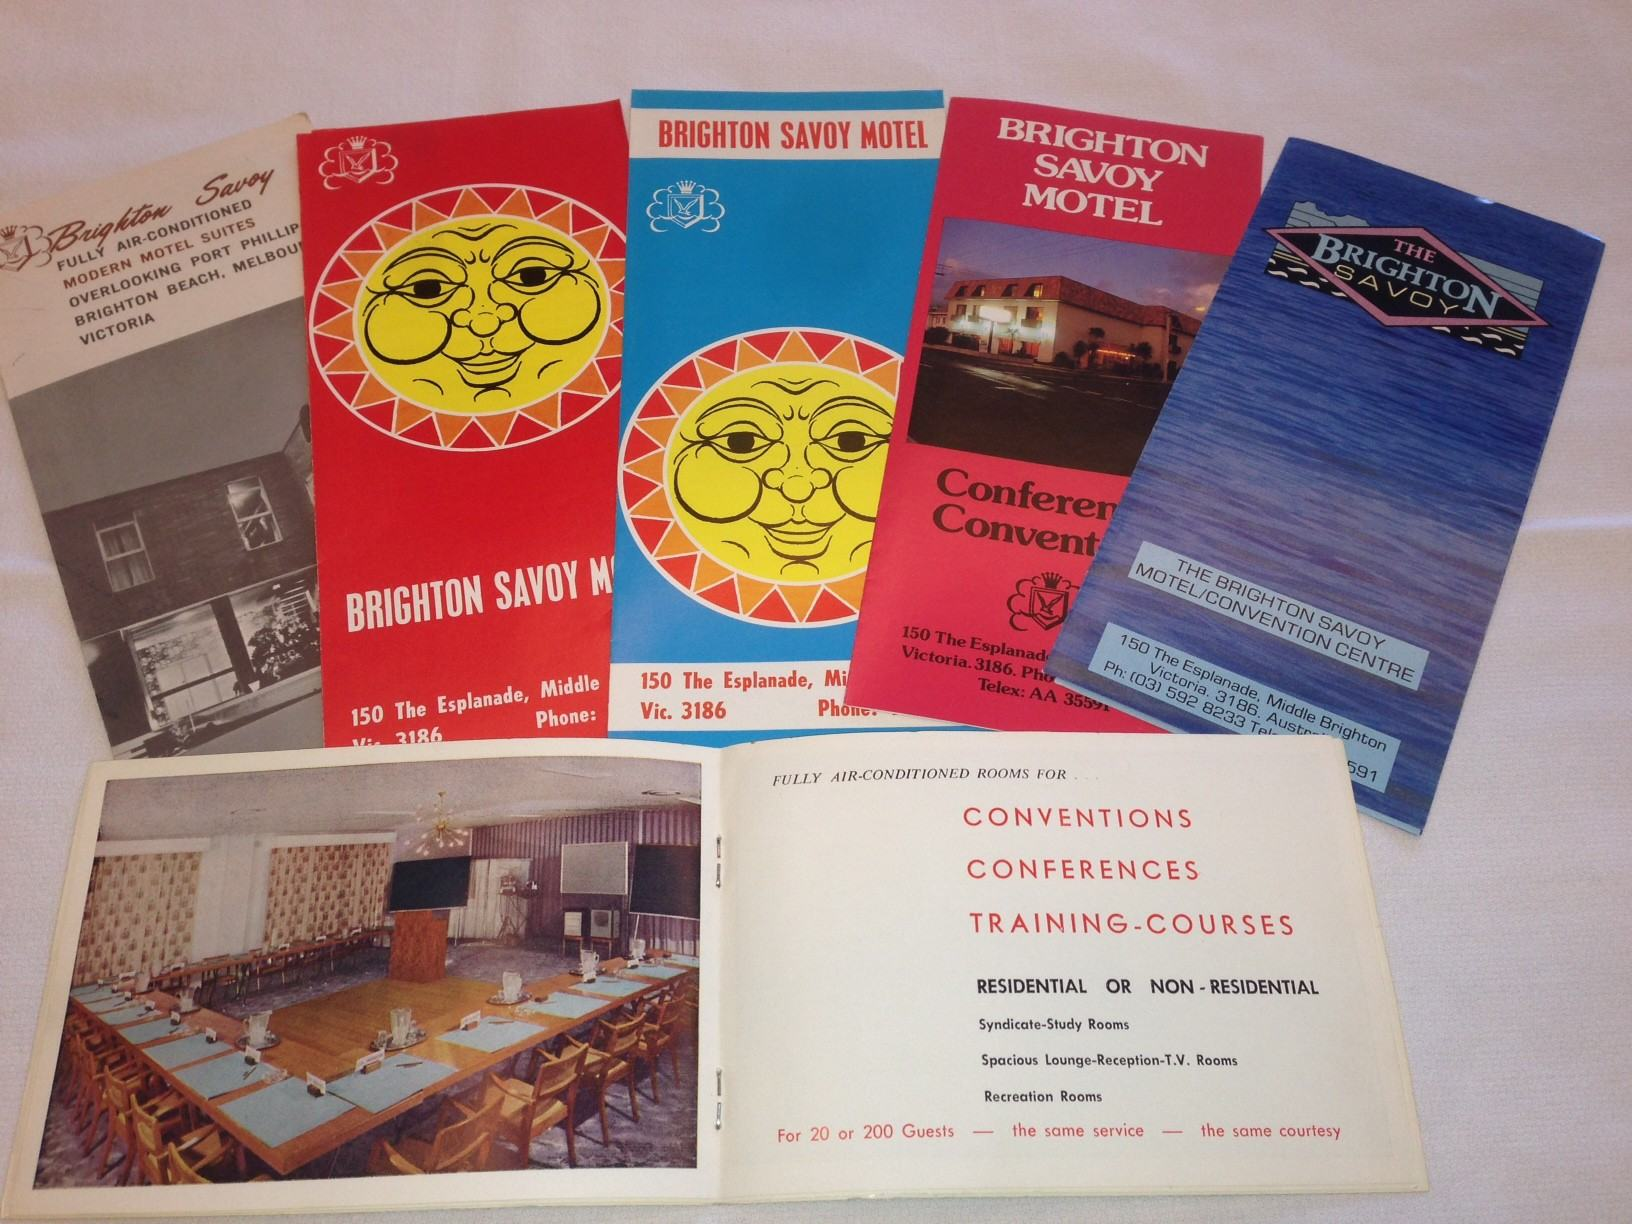 Photo of historical Brighton Savoy motel and hotel brochures